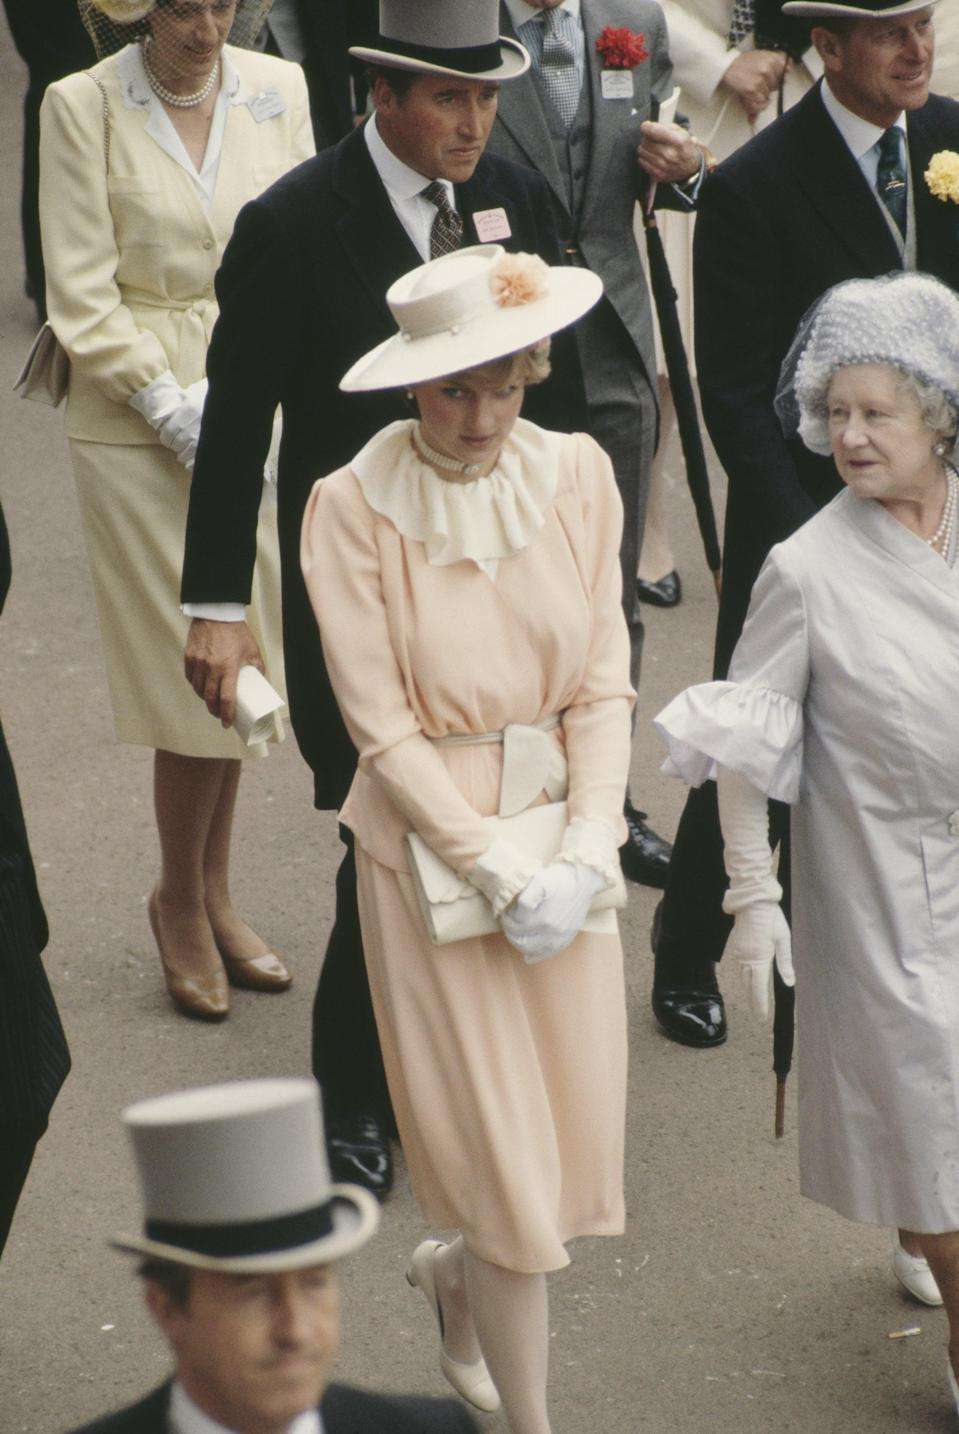 <p>Diana also owned a white leather clutch with a scalloped edge, seen here with the feminine outfit she wore to her first Ascot meeting with the royal family in 1981.</p>